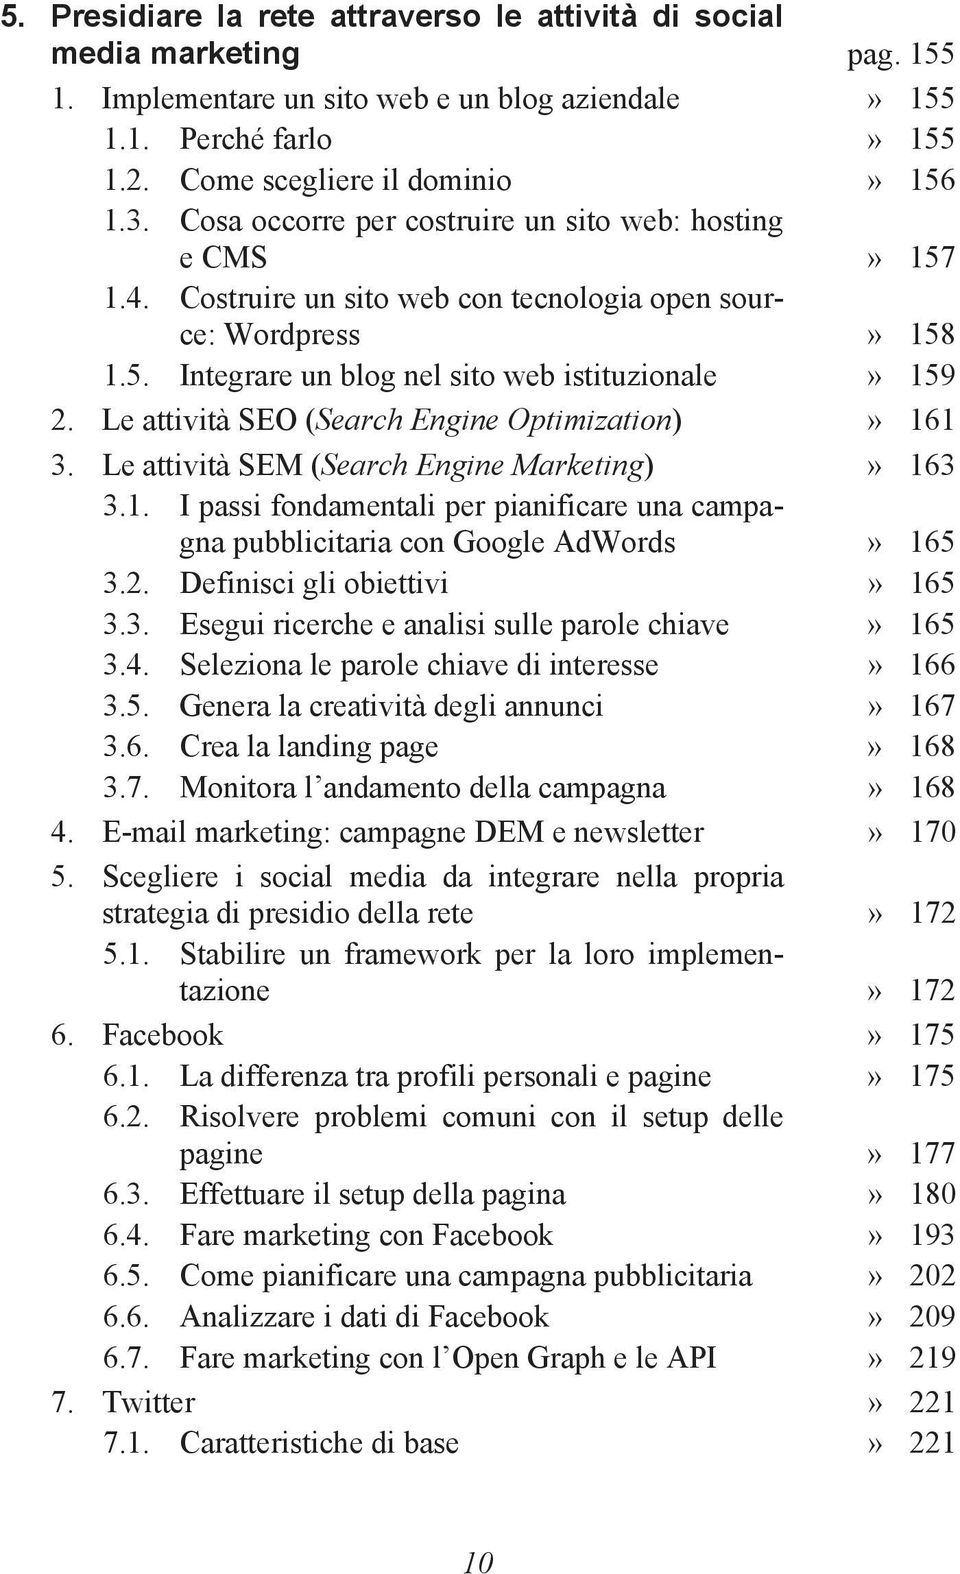 Le attività SEO (Search Engine Optimization)» 161 3. Le attività SEM (Search Engine Marketing)» 163 3.1. I passi fondamentali per pianificare una campagna pubblicitaria con Google AdWords» 165 3.2.